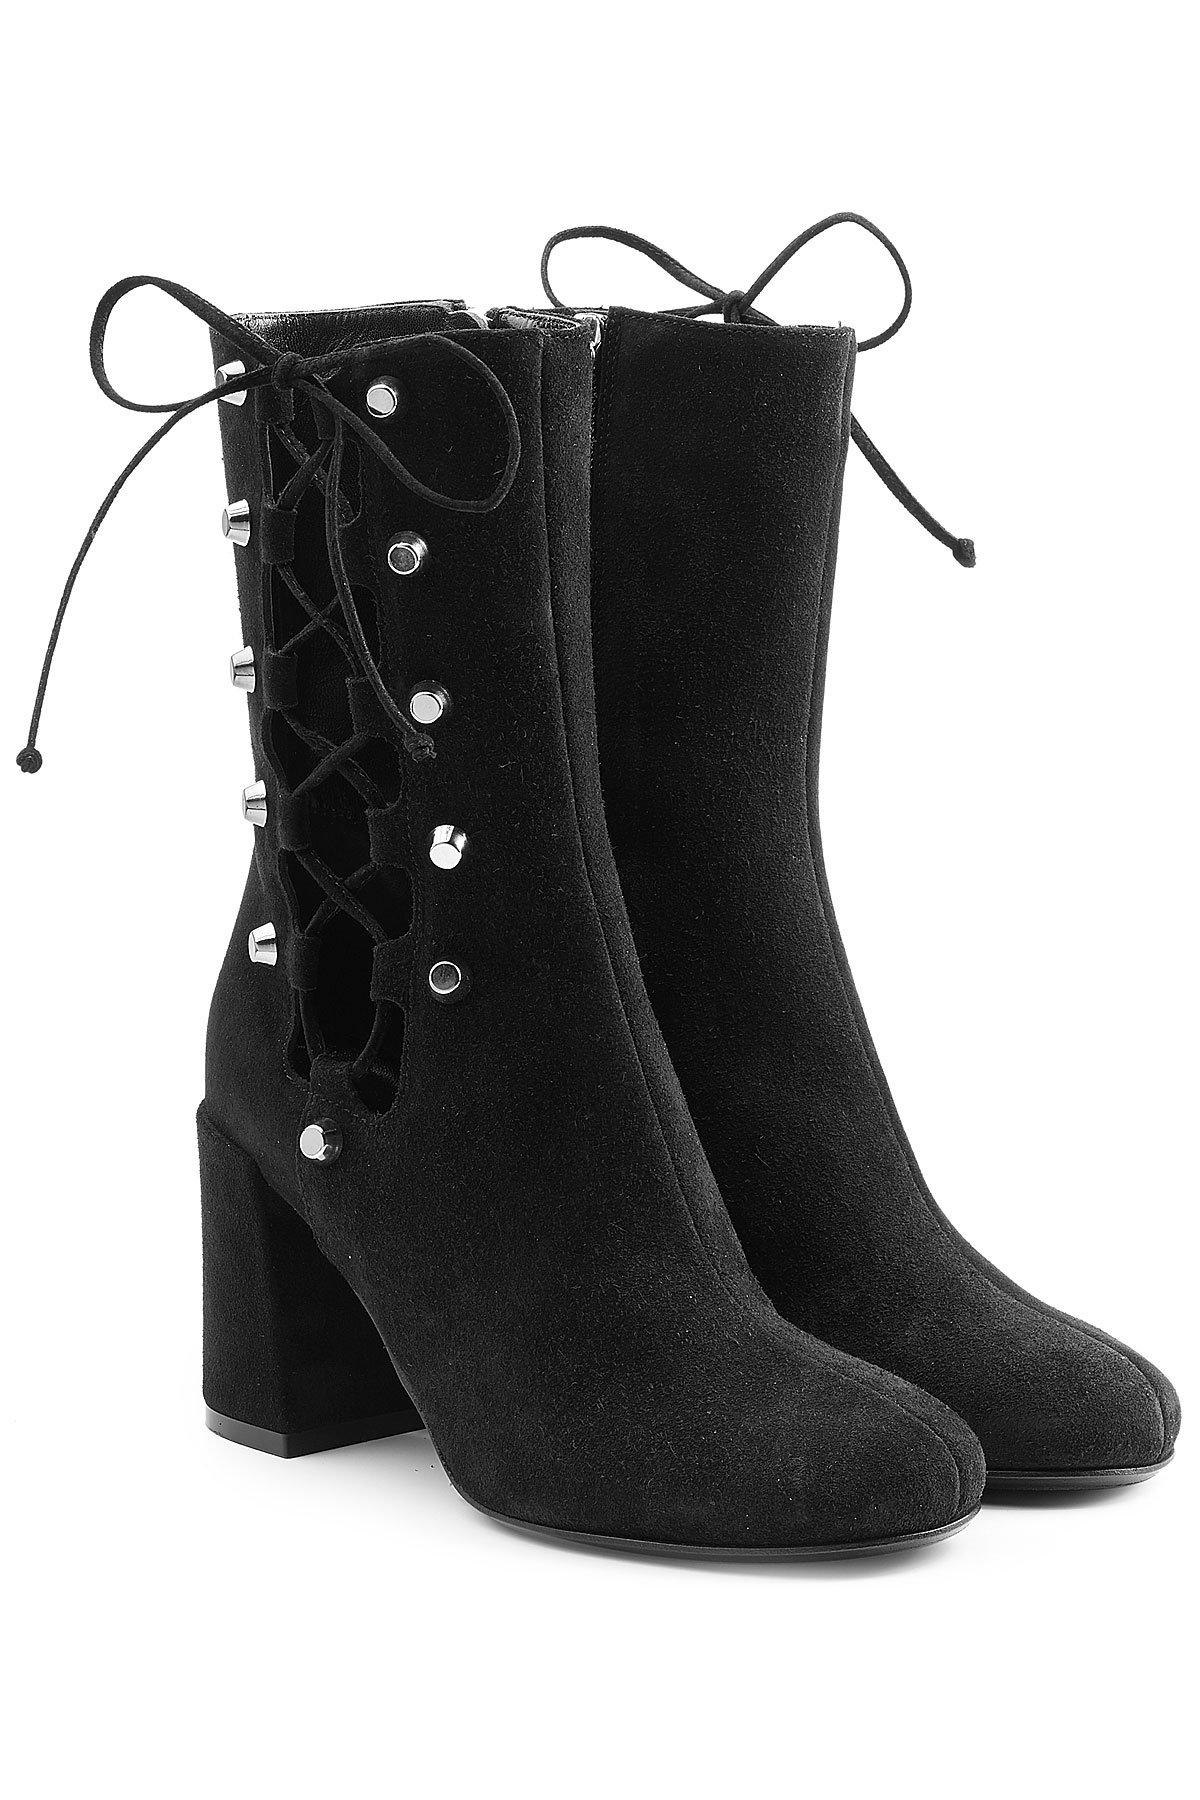 suede boots with lace-up sides